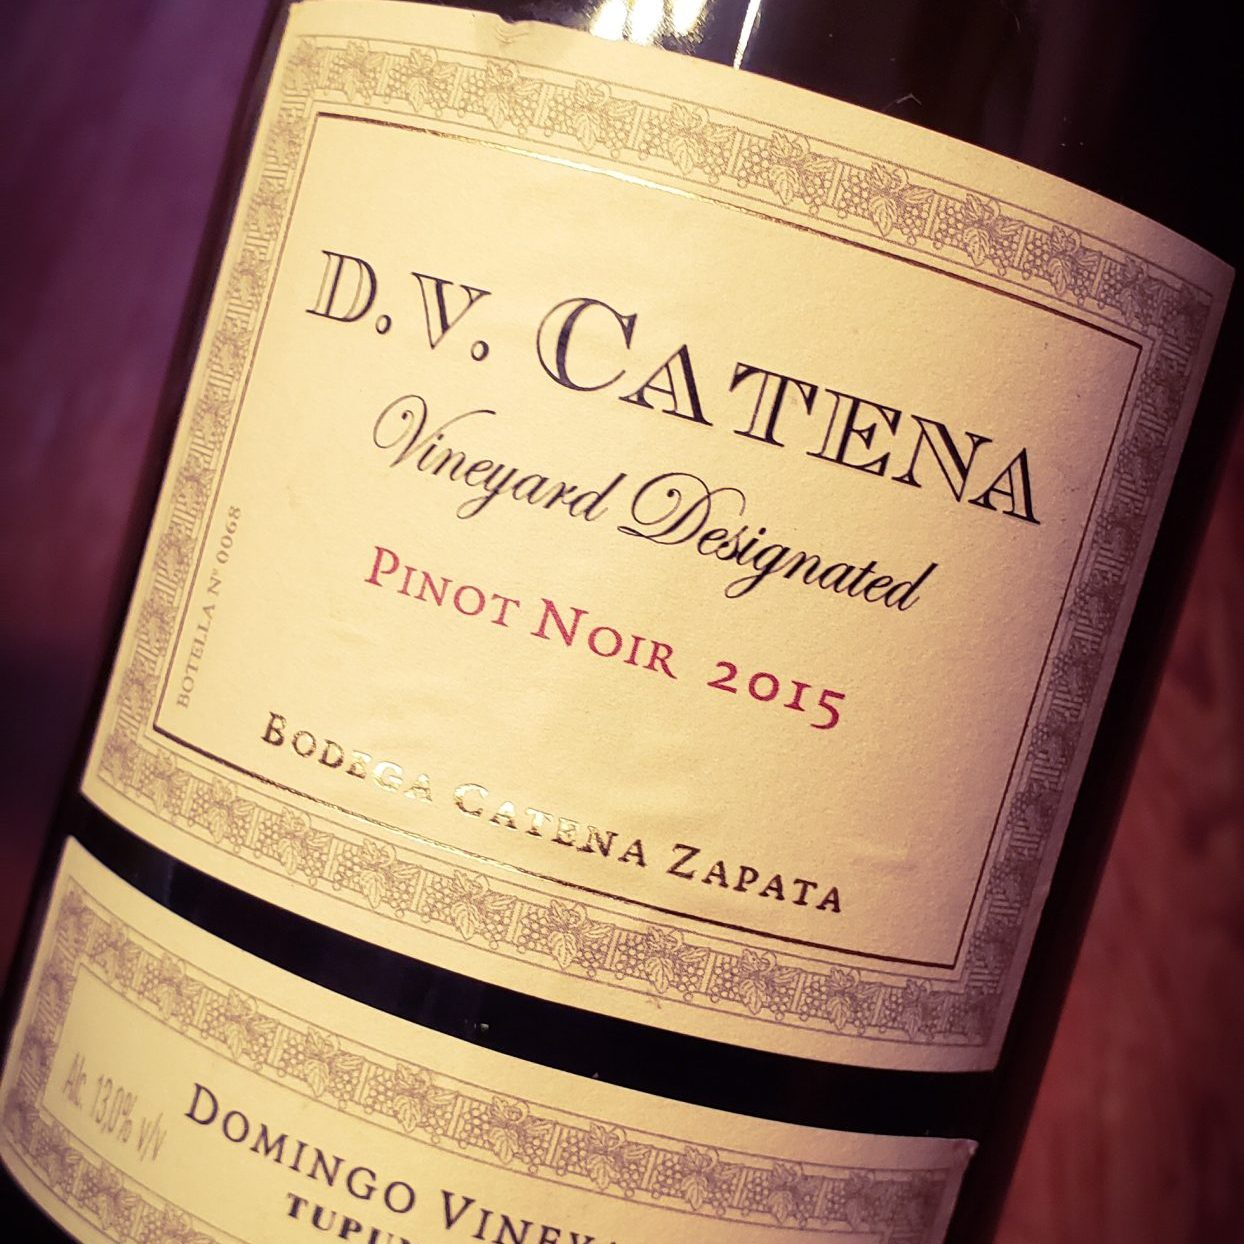 100 días - DV Catena Vineyard Designated Pinot Noir 2015